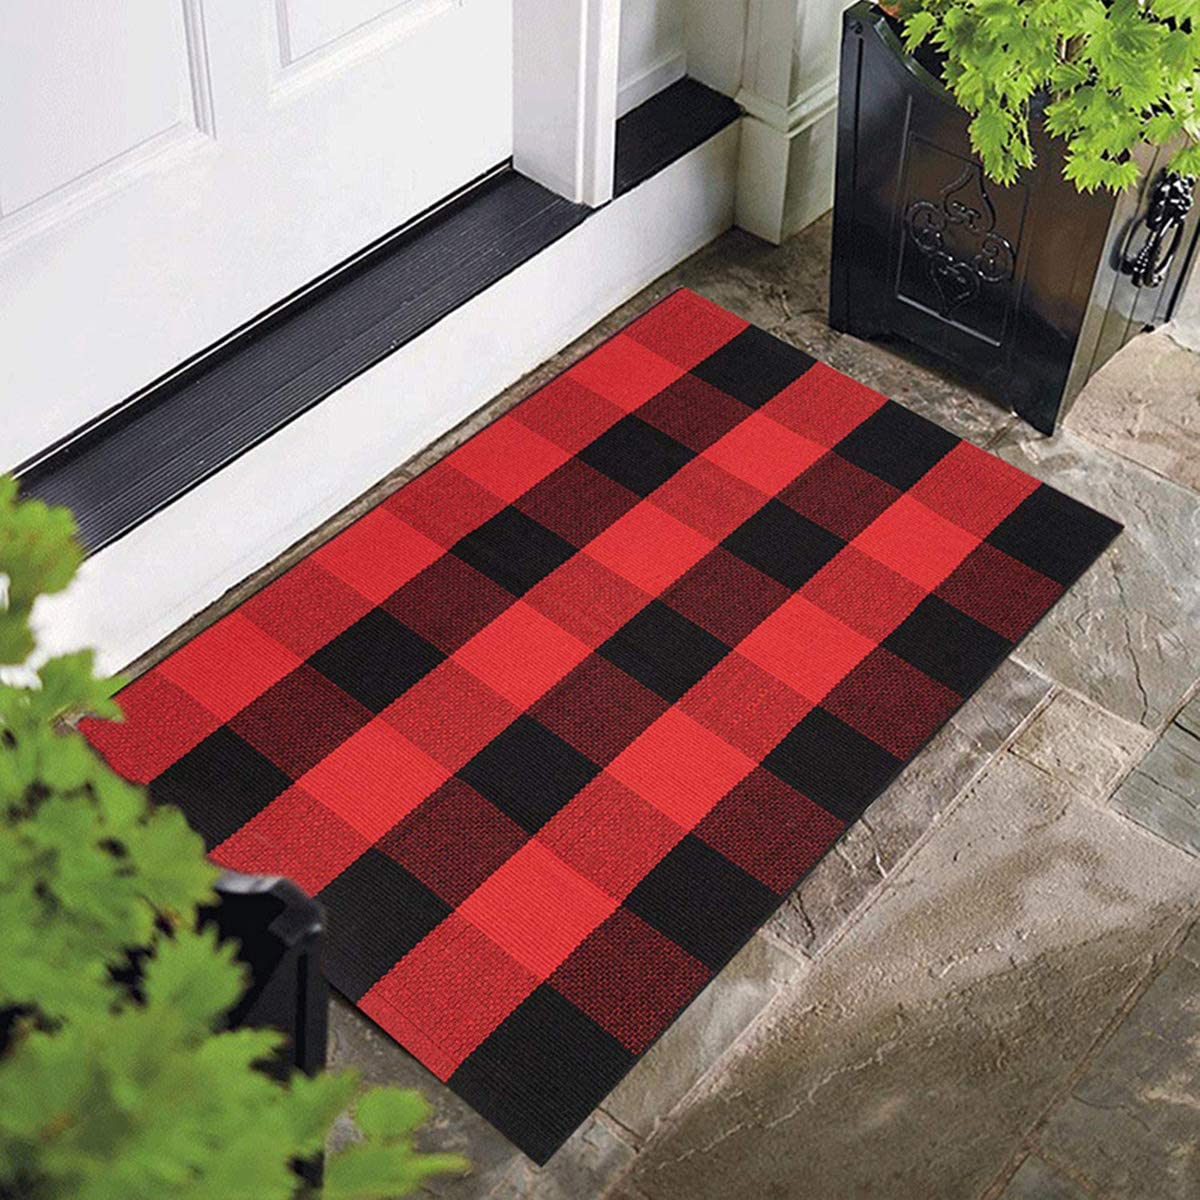 USTIDE Buffalo Check Rug 35.4 x59 100 Cotton Hand-Woven Area Rug Black Red Machine Washable Area Carpet Farmhouse Doormat